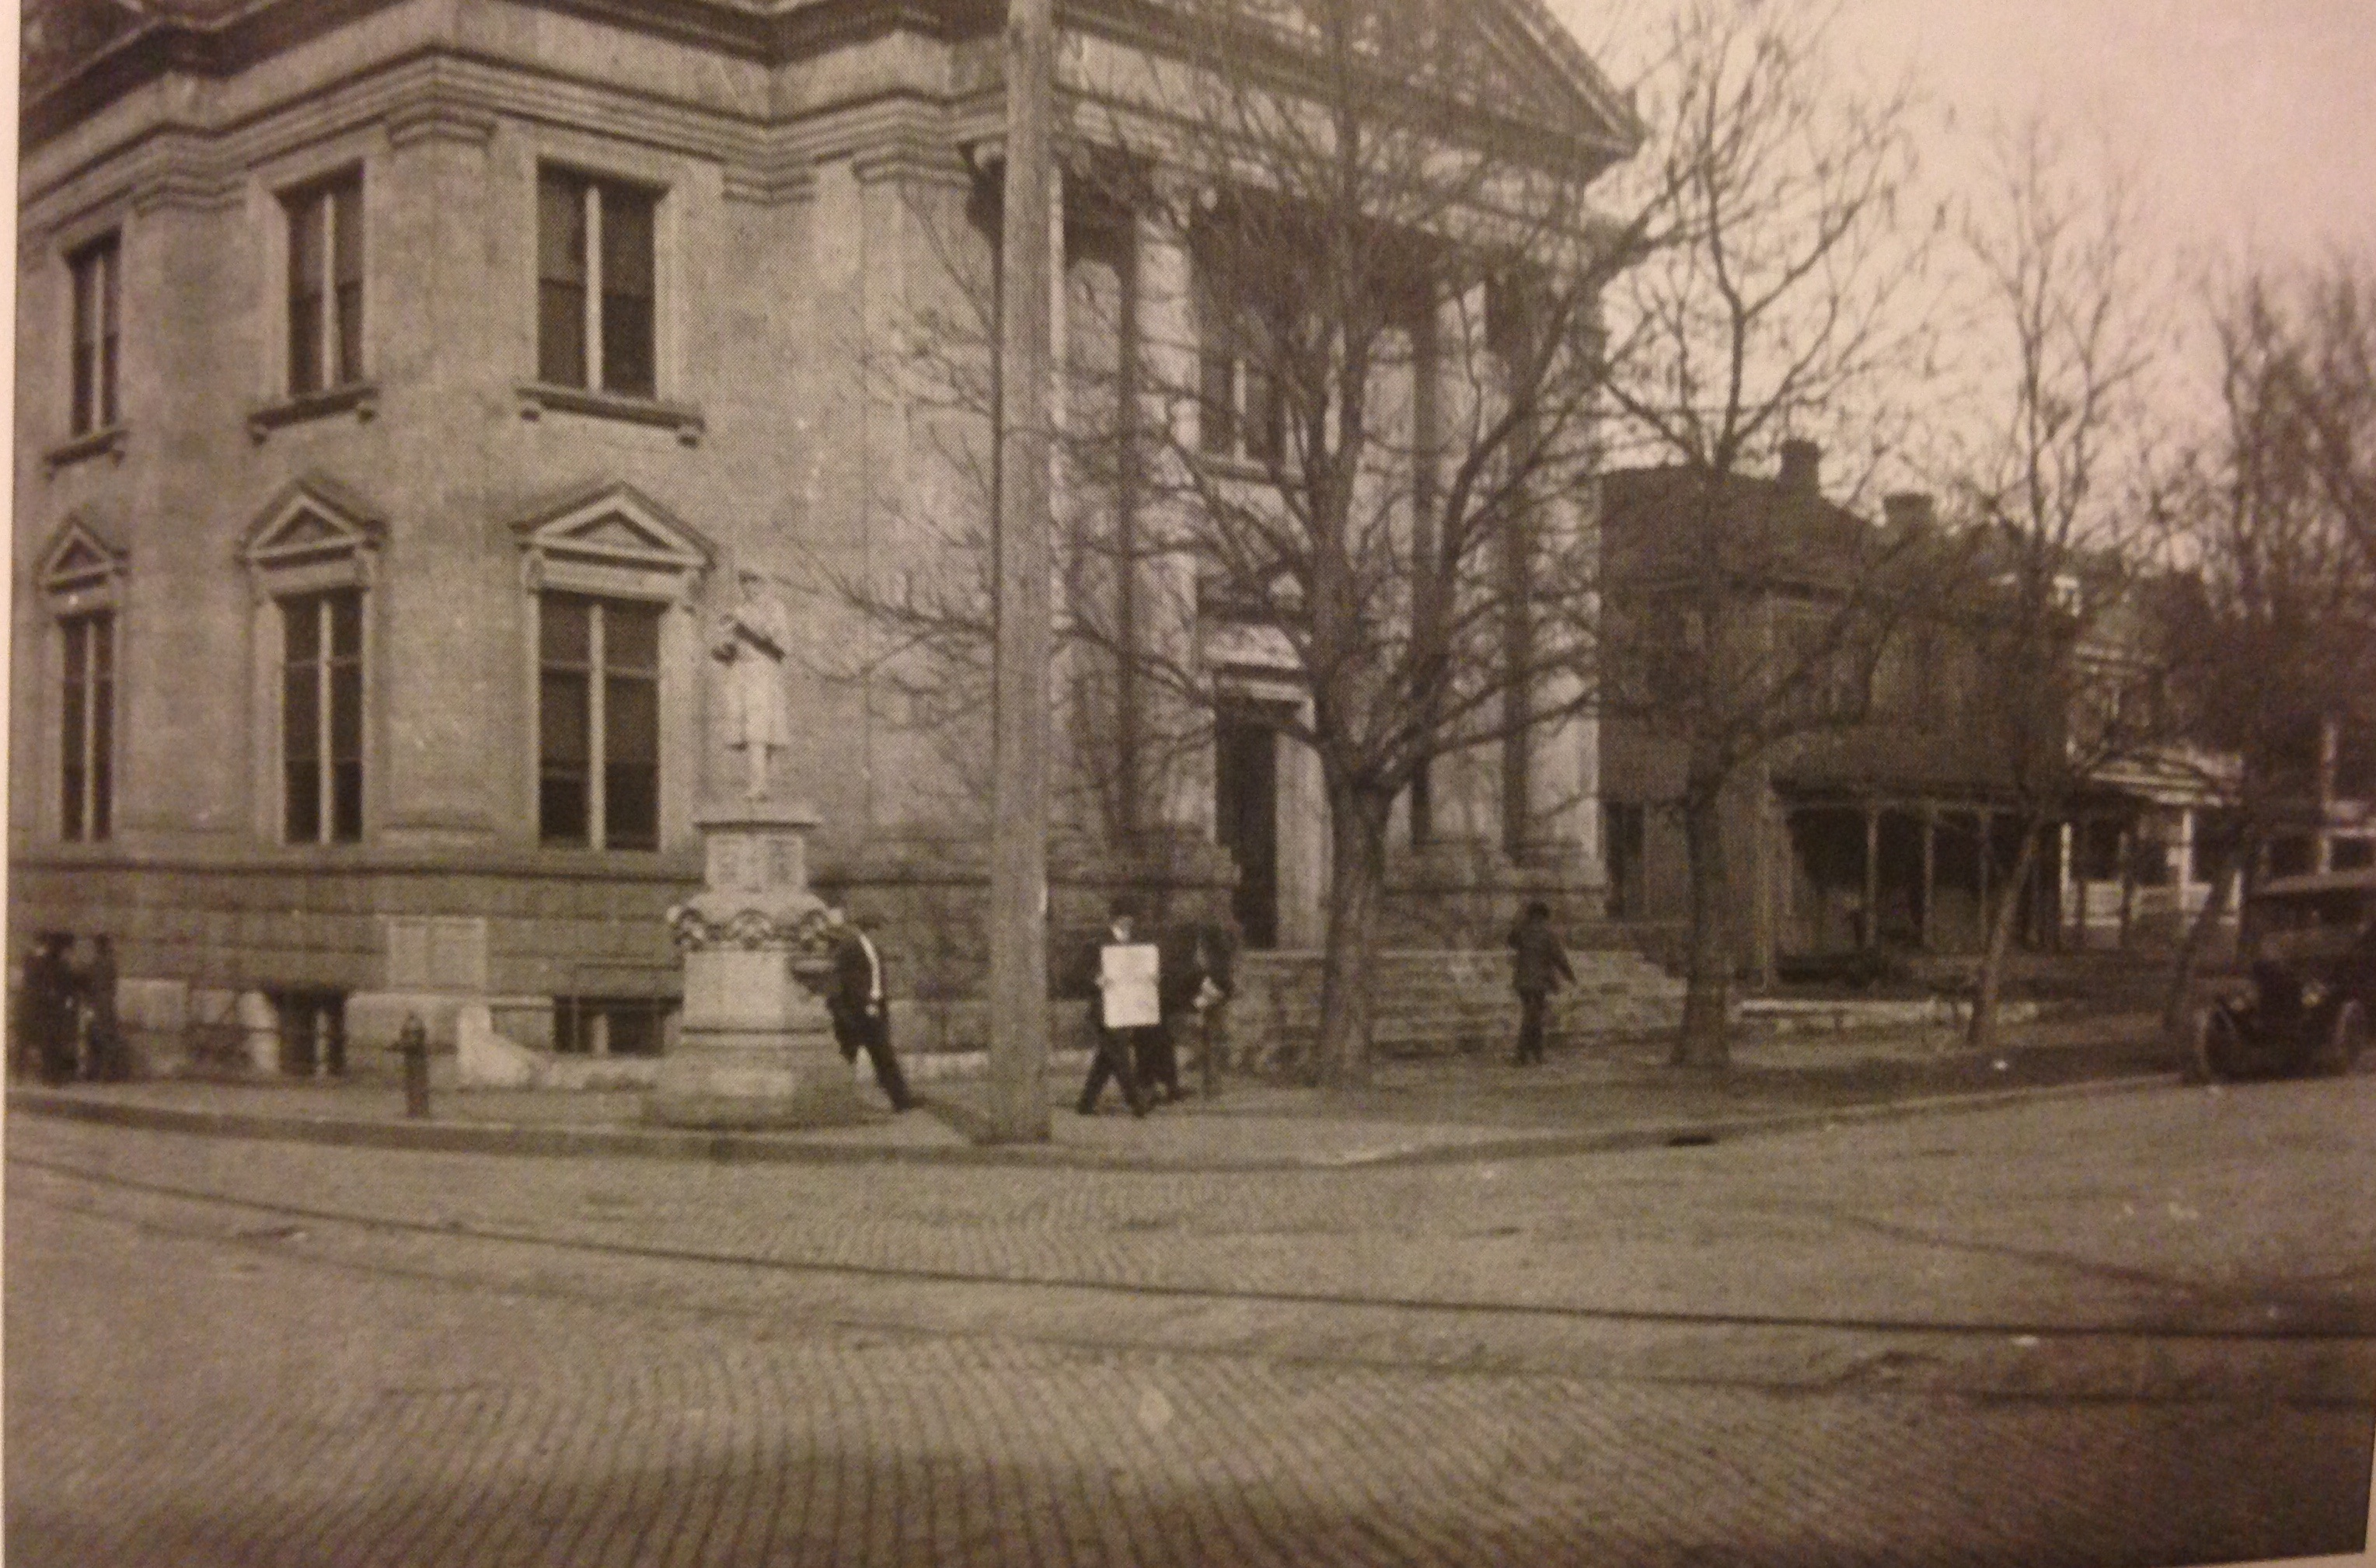 The library sometime before 1915; note the presence of a Civil War statue, which mysteriously disappeared by that year.